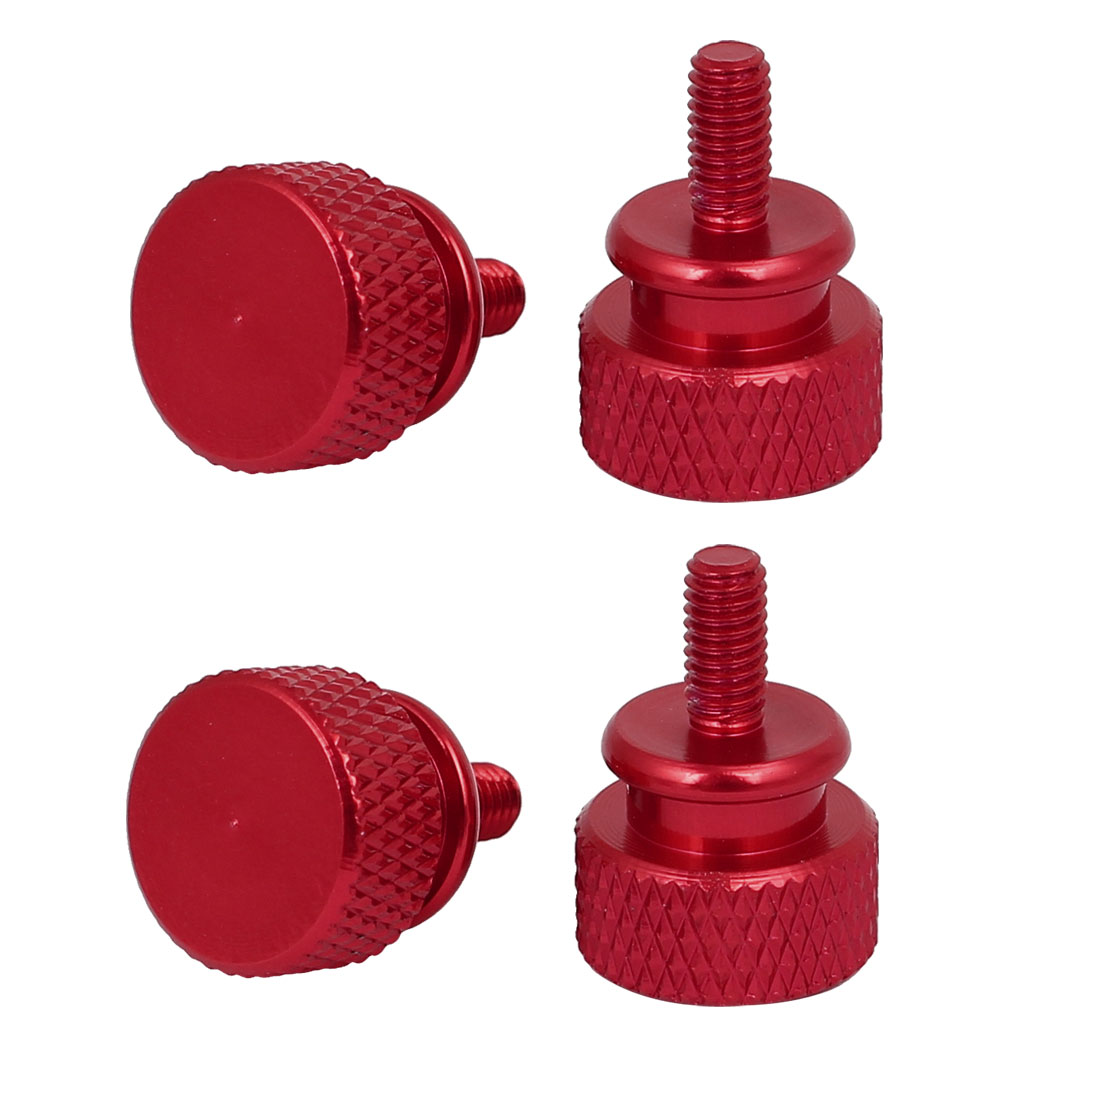 Computer PC Case Fully Threaded Knurled Thumb Screws Wine Red M3.5x7mm 4pcs